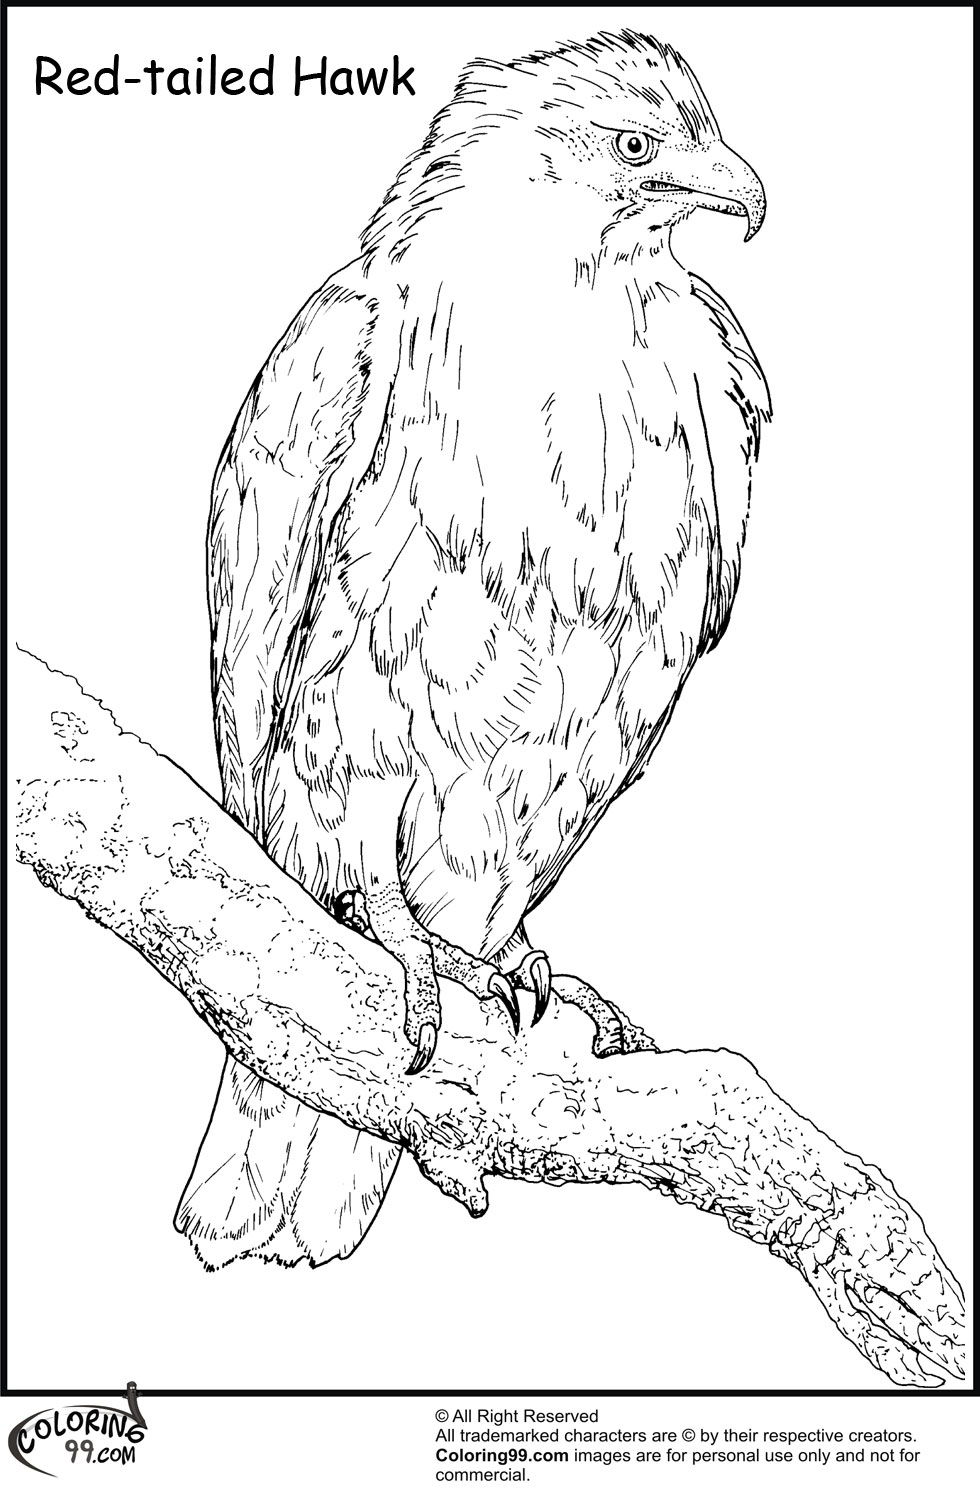 Hawk coloring pages team colors for Red tailed hawk coloring page